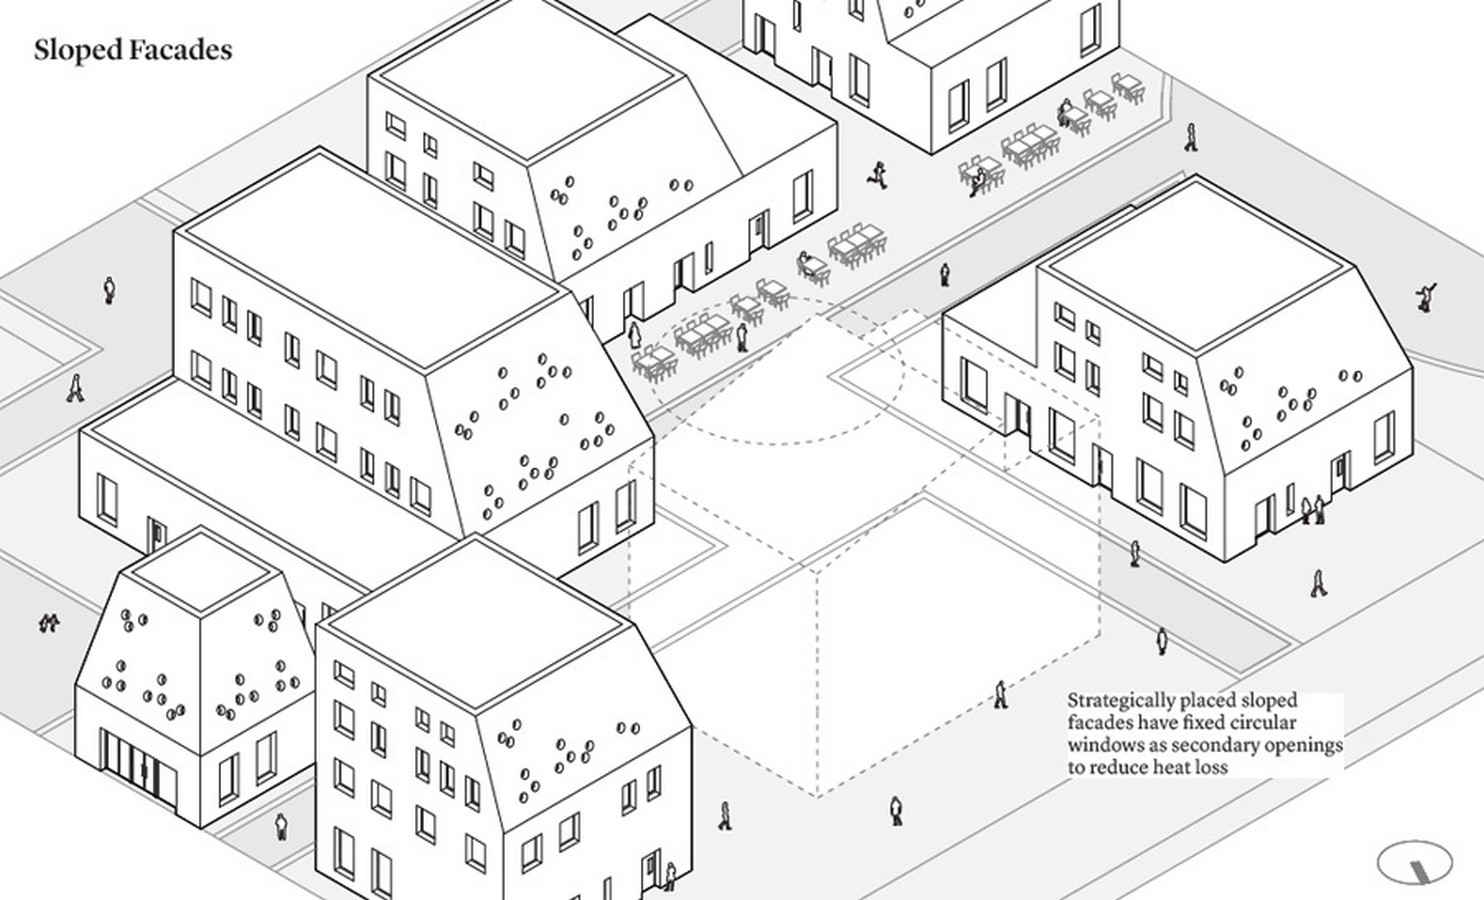 TedTalks for Architects: 3 ways we can redesign cities for equity and inclusion by Vishaan Chakrabarti Sheet13